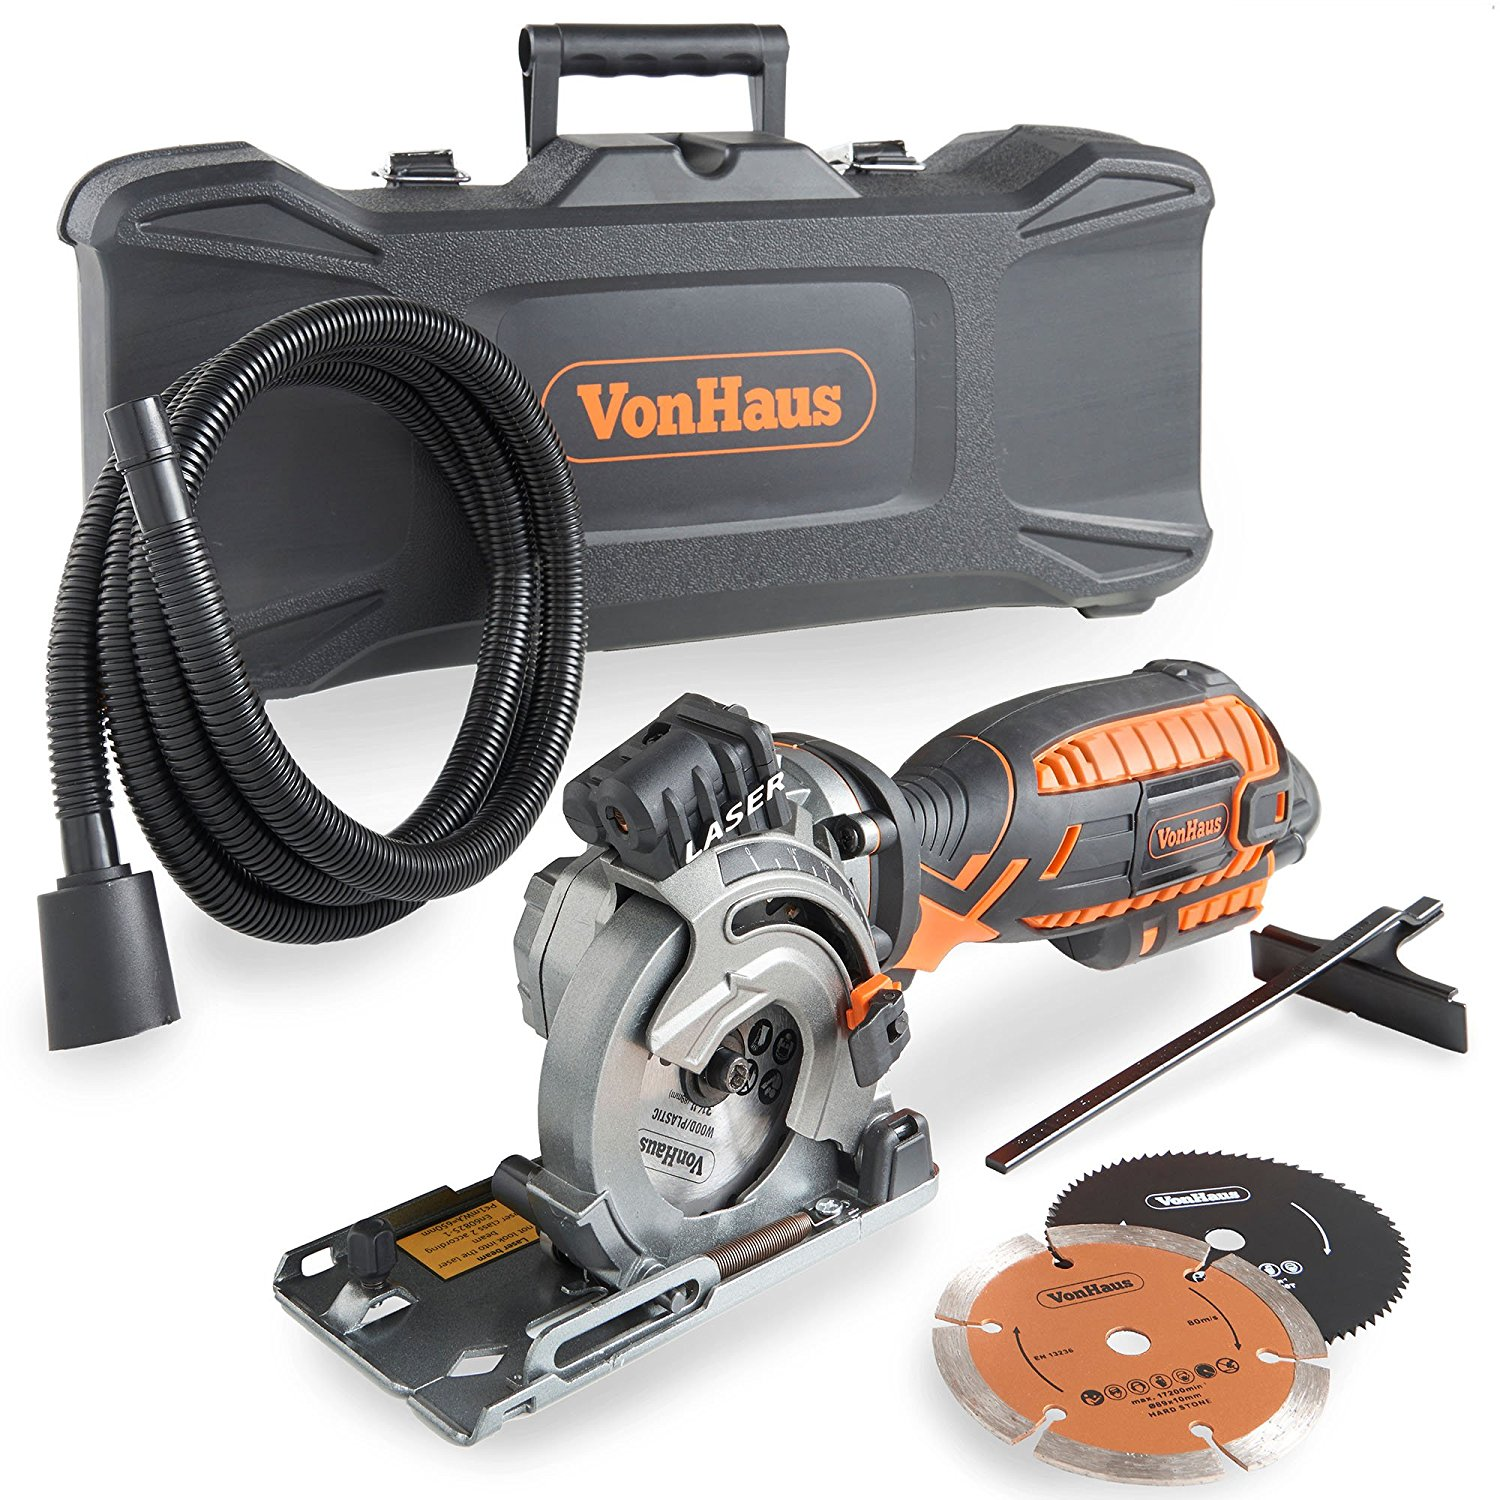 7. VONHAUS Corded Circular Saw